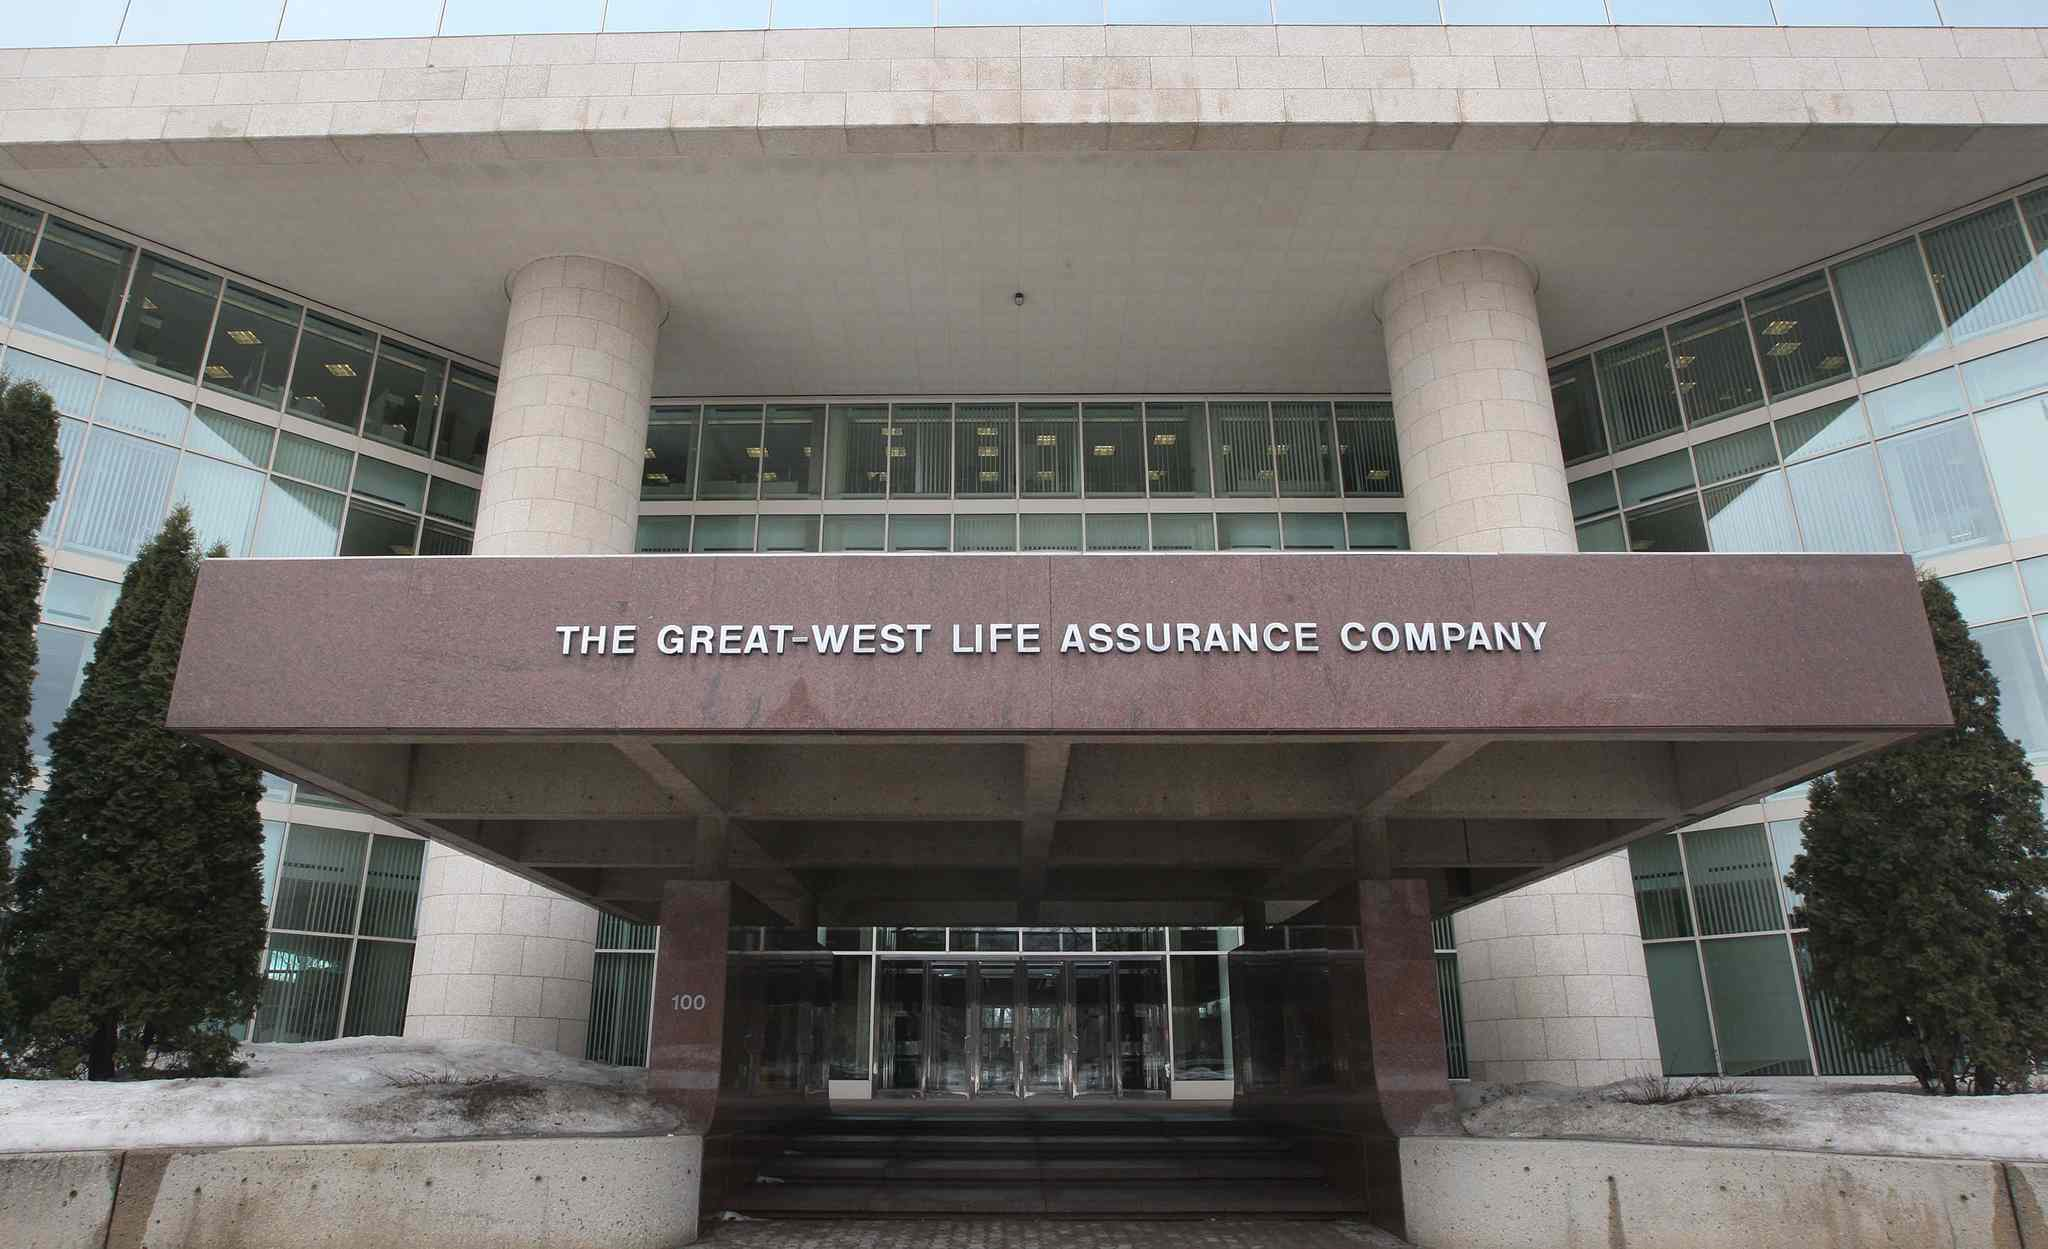 Great-West Life has acquired PDAssure, which will keep its name and operate as a subsidiary.